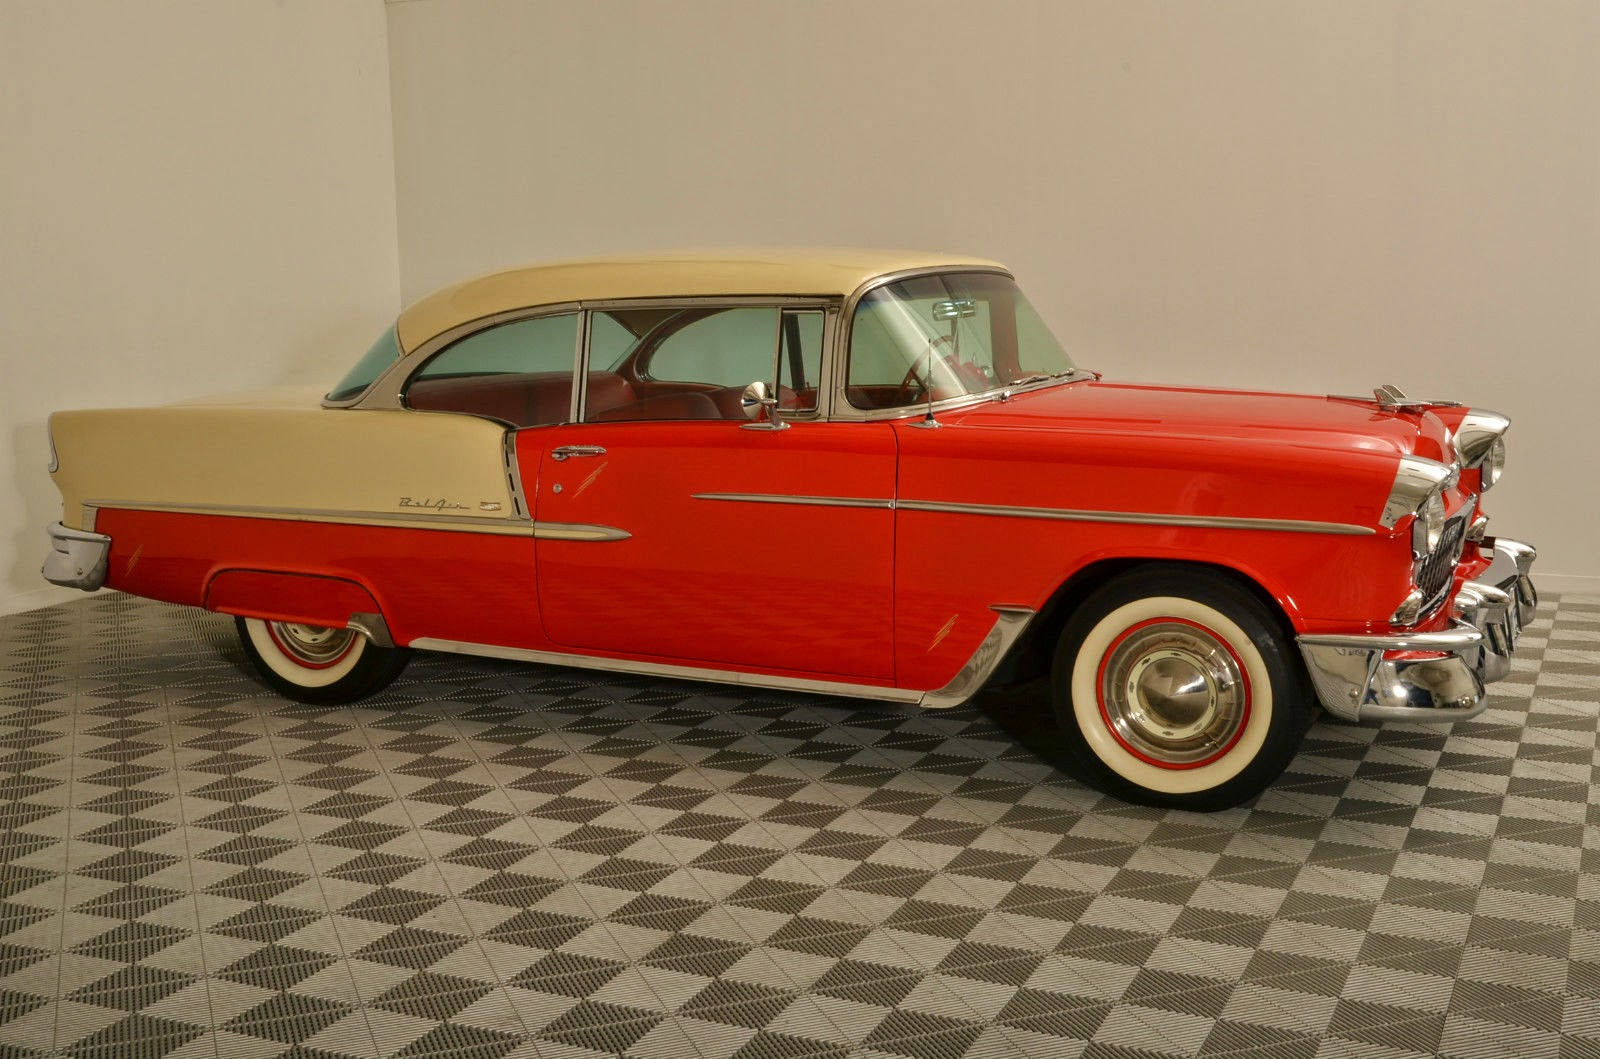 All American Classic Cars 1955 Chevrolet Bel Air 2 Door Hardtop Chevy Coupe Sport